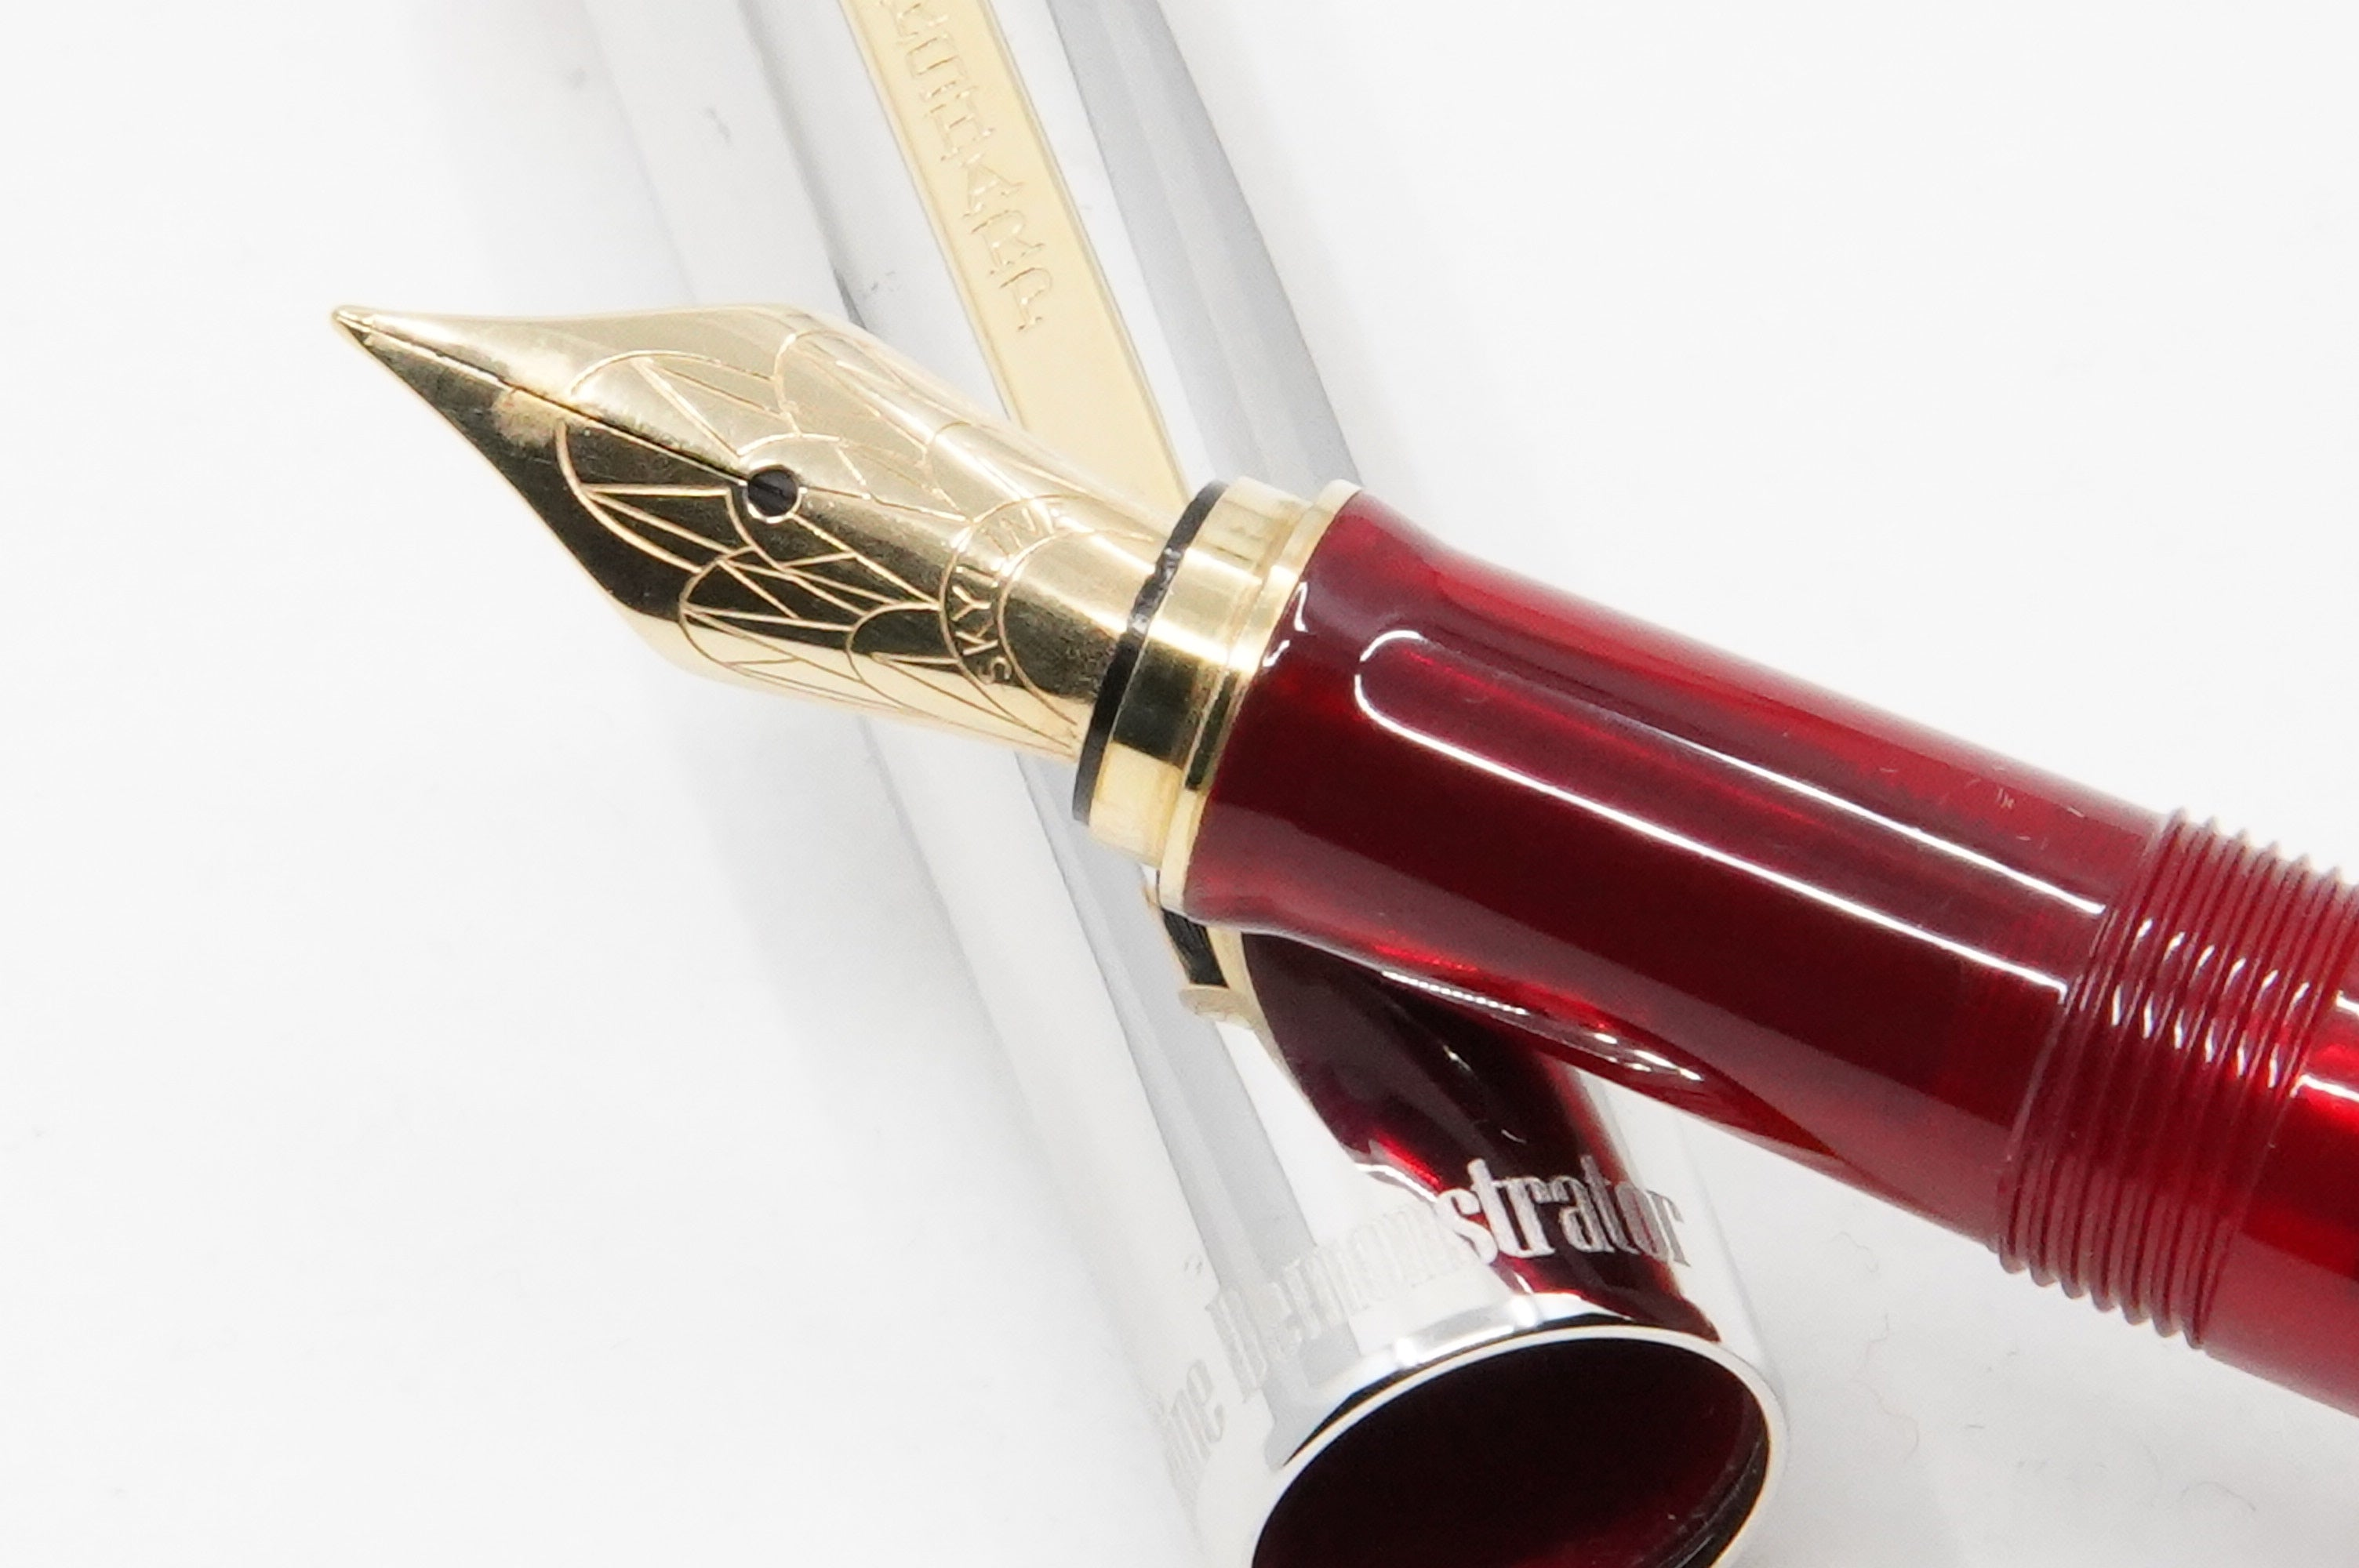 Wahl Eversharp Skyline FP red demo - The iconic SKYLINE created by Henry Dreyfus in 1939